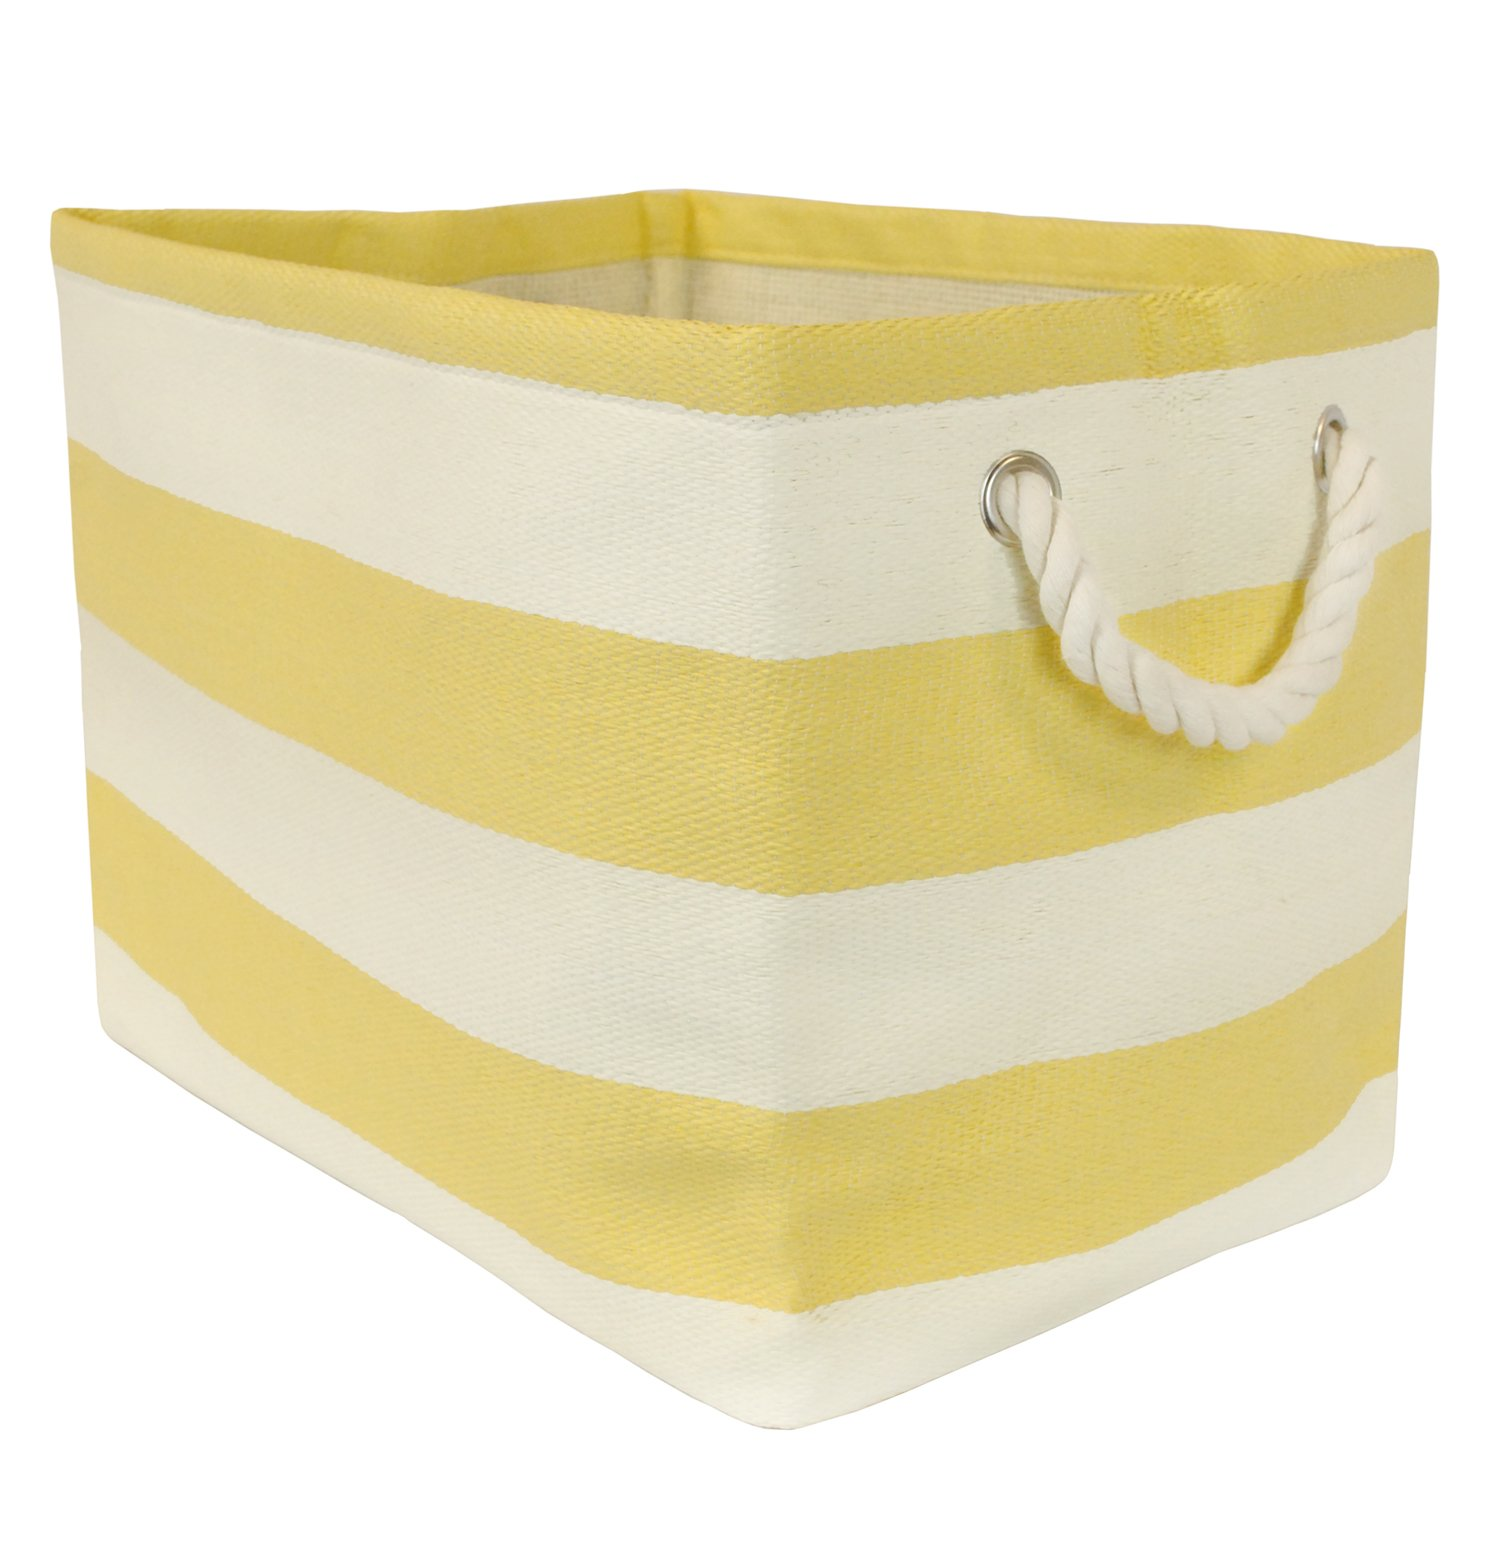 DII Woven Paper Storage Basket or Bin, Collapsible & Convenient Home Organization Solution for Office, Bedroom, Closet, Toys, & Laundry (Large - 17x12x12�), Yellow Rugby Stripe